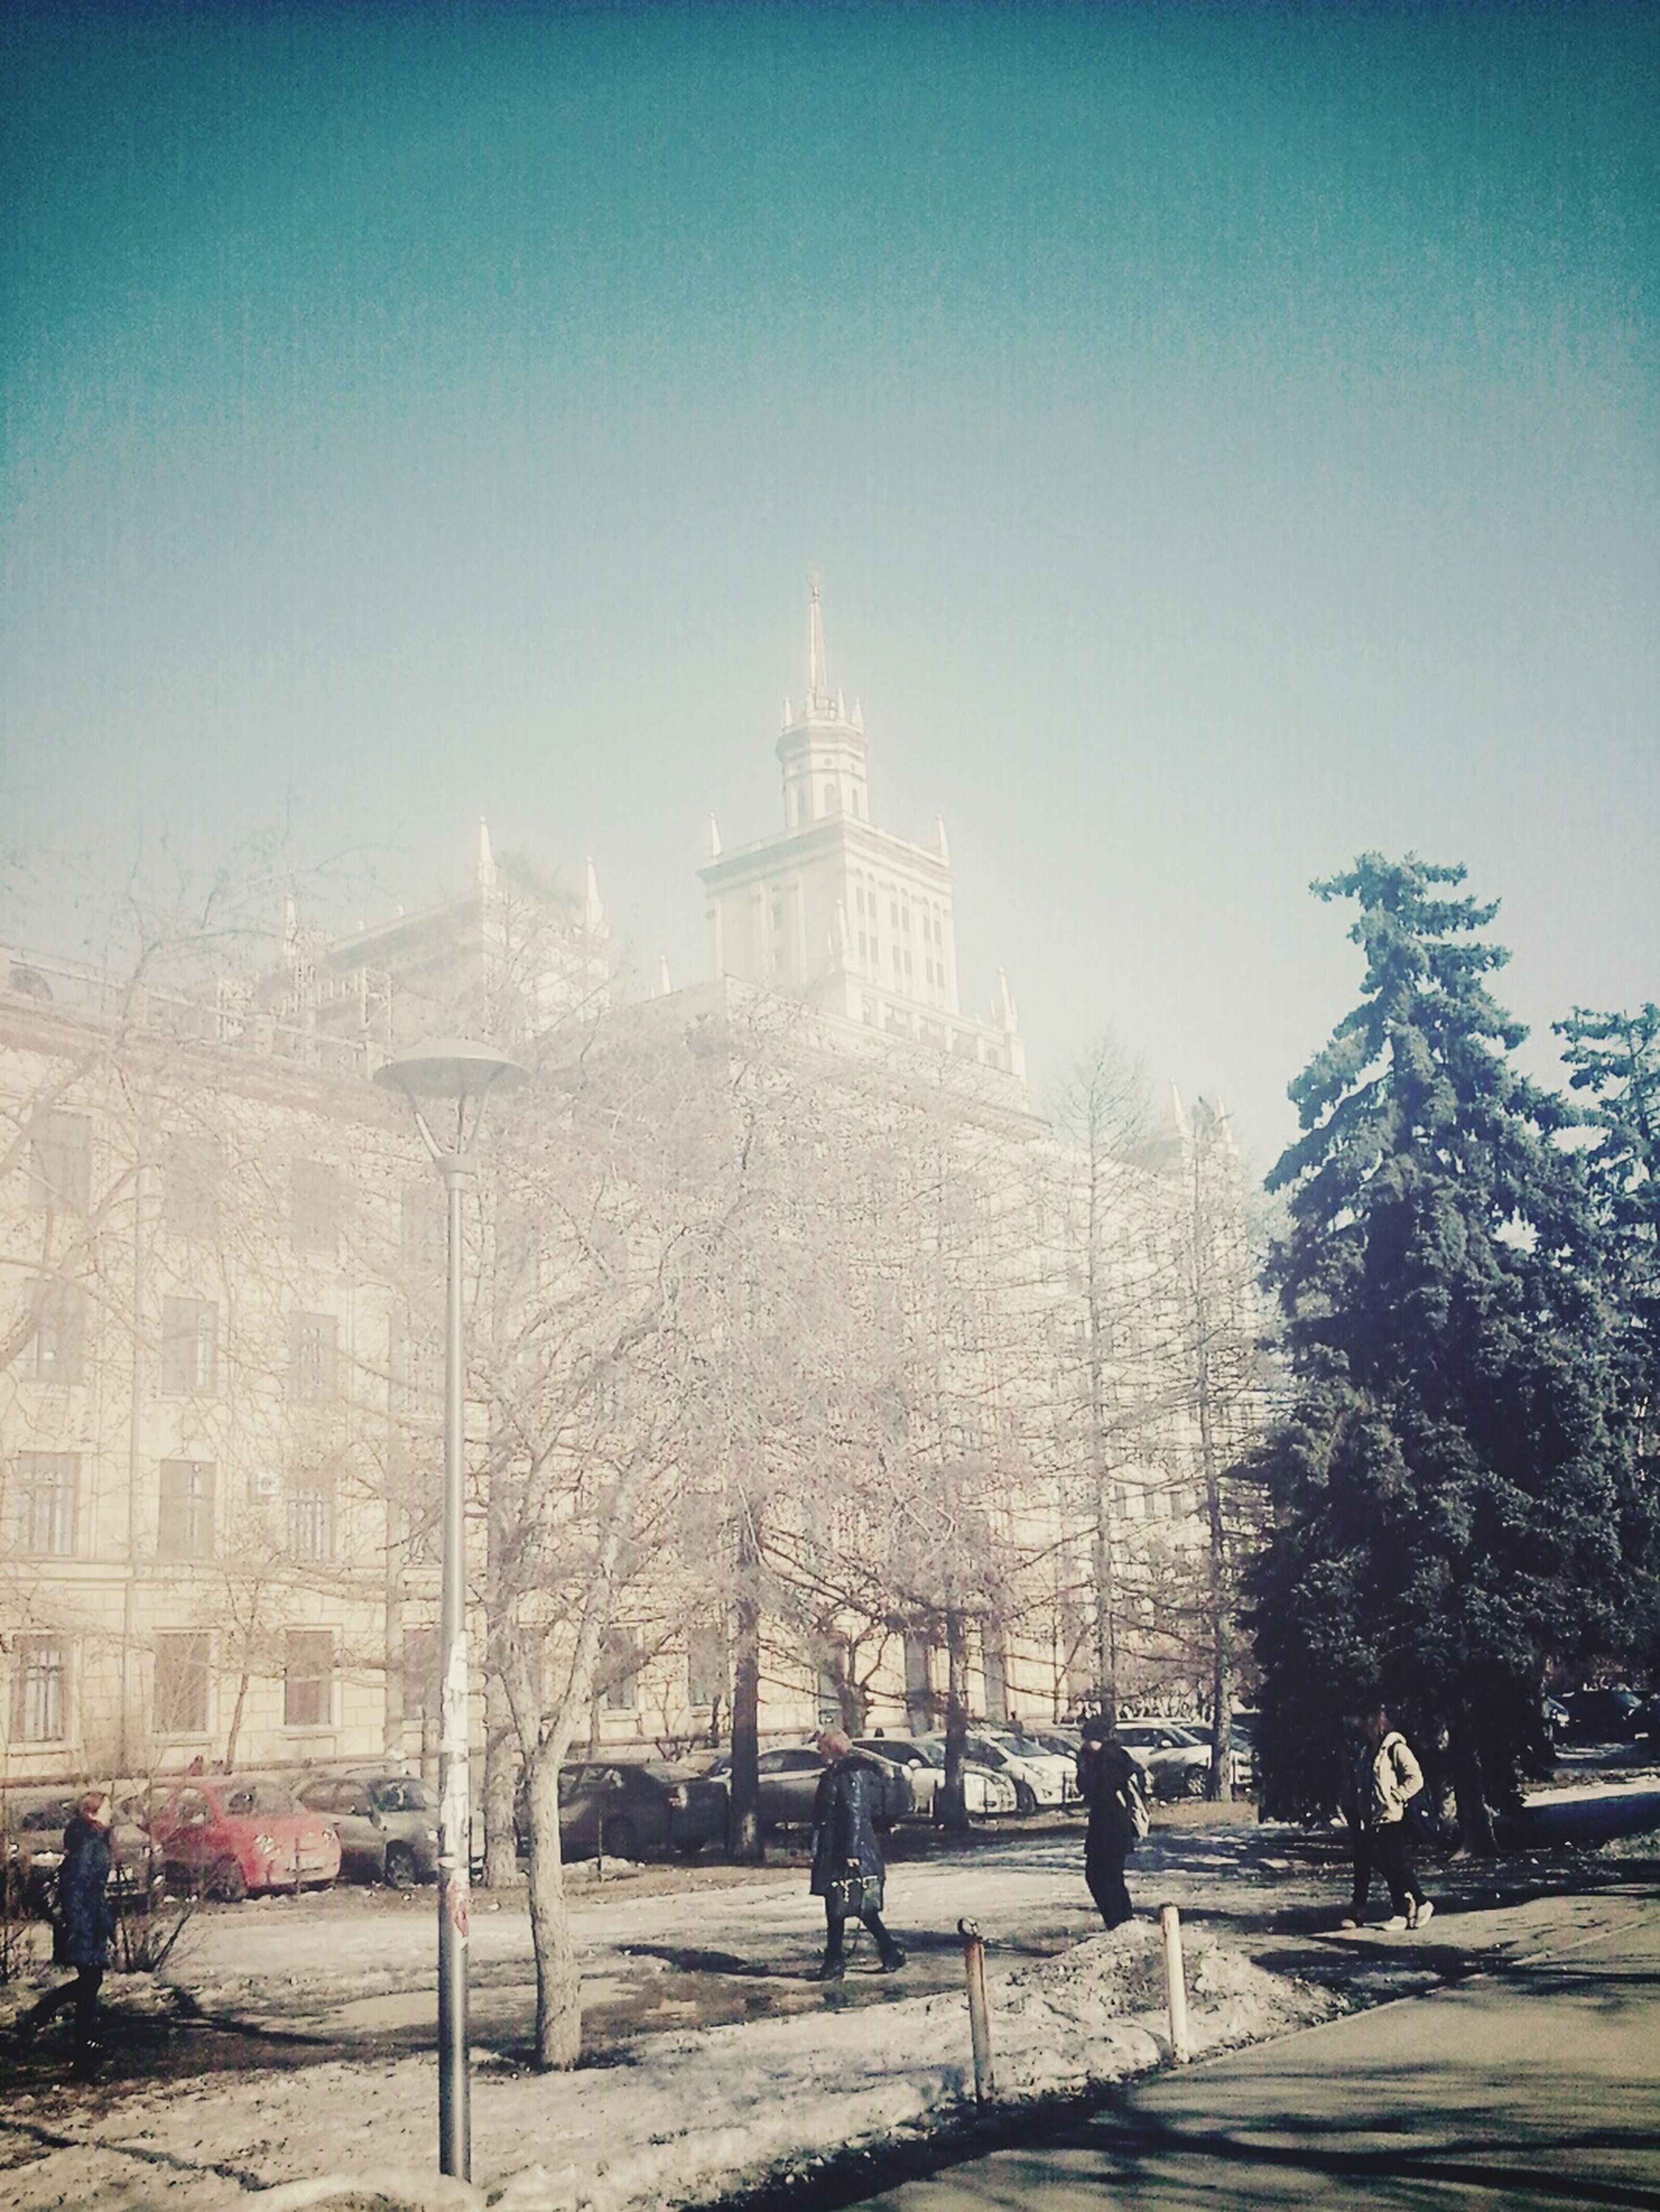 building exterior, built structure, architecture, clear sky, winter, snow, cold temperature, tree, season, city, copy space, car, tower, road, bare tree, weather, street, incidental people, travel destinations, transportation